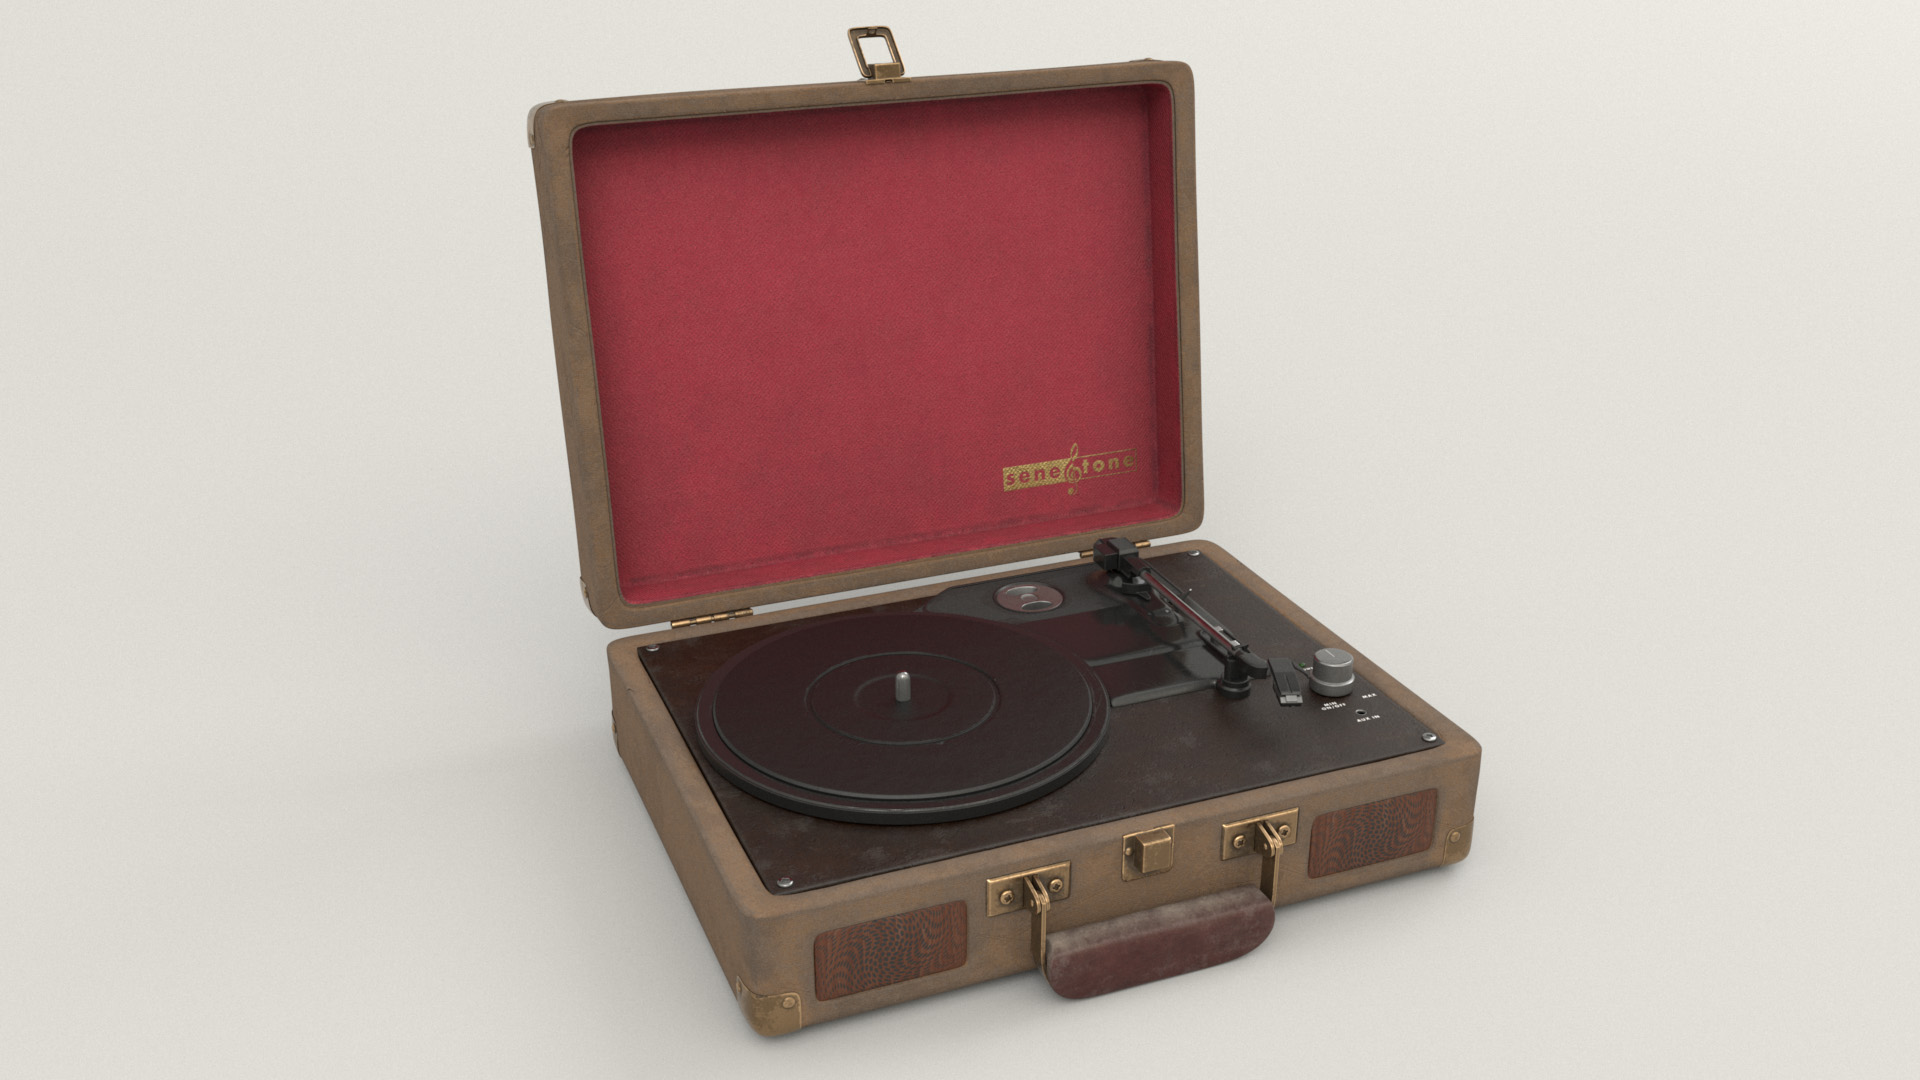 Figure 19: Record player briefcase prop, wide view.